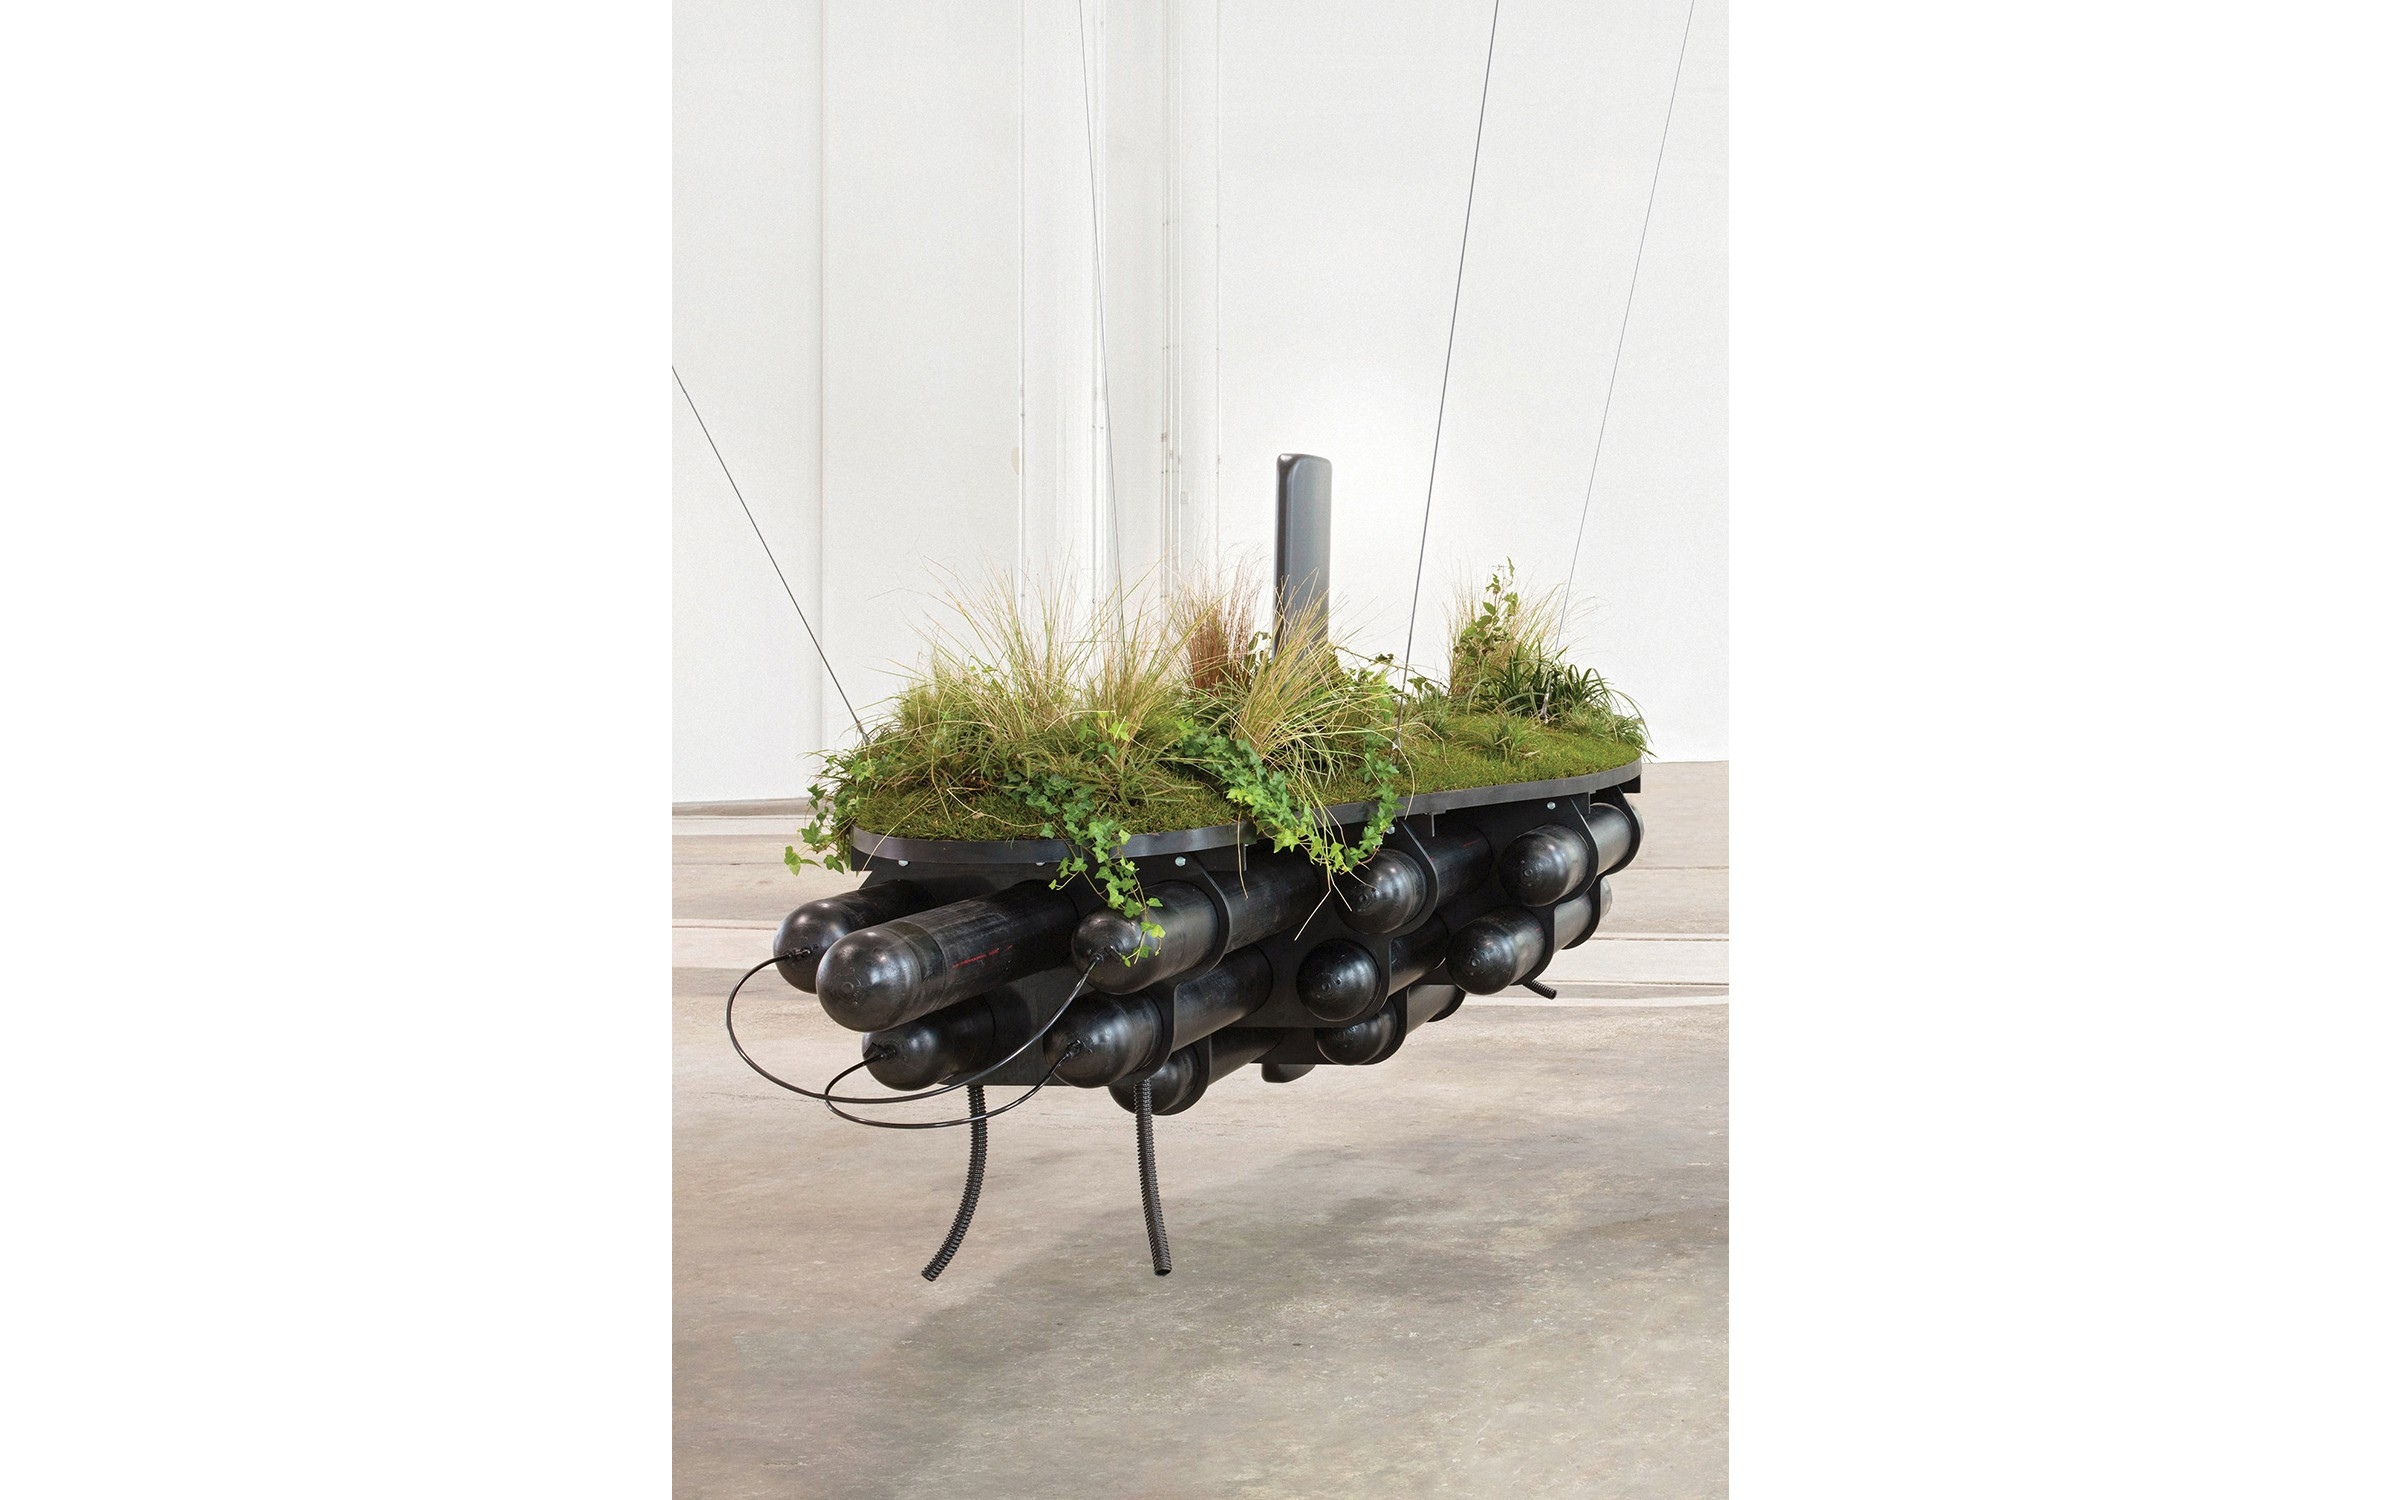 Simon Starling, Project for a Floating Garden (After Little Sparta), 2011, 2015.jpg